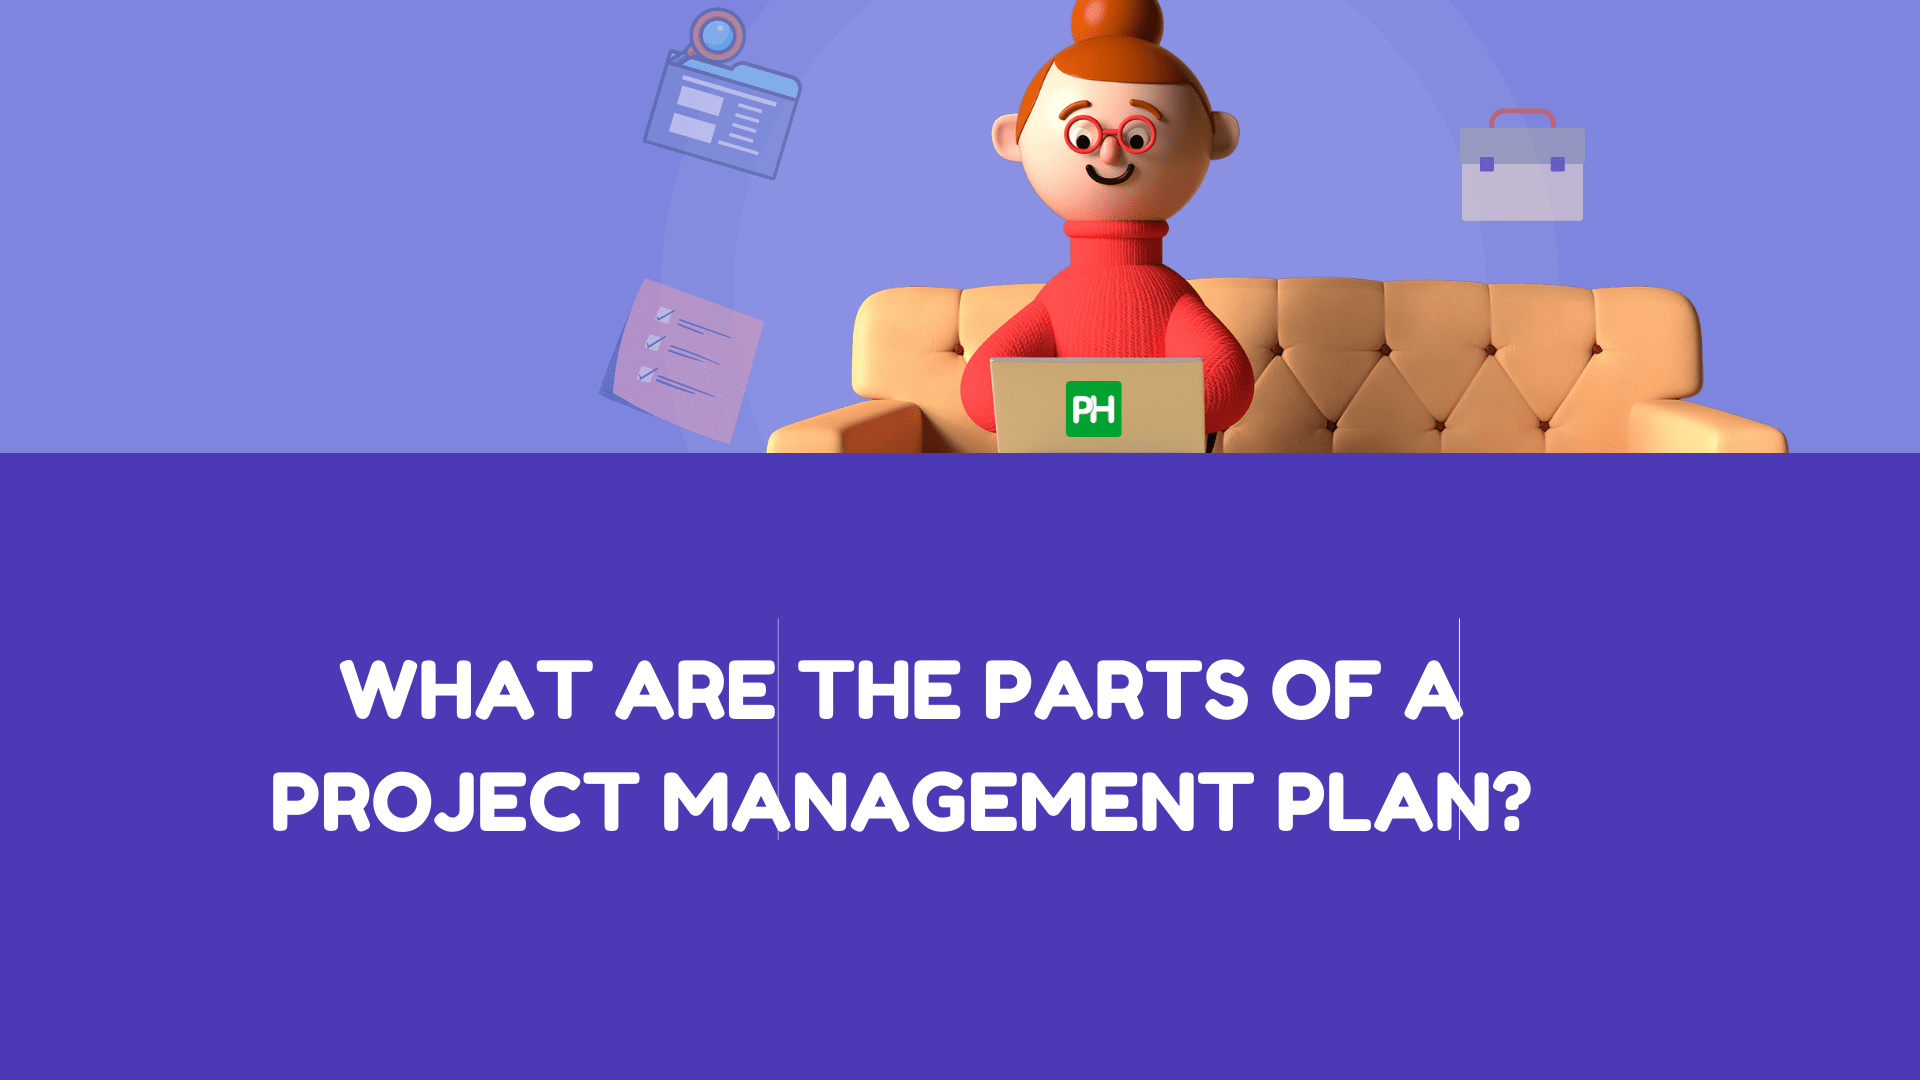 What Are The Parts Of A Project Management Plan?